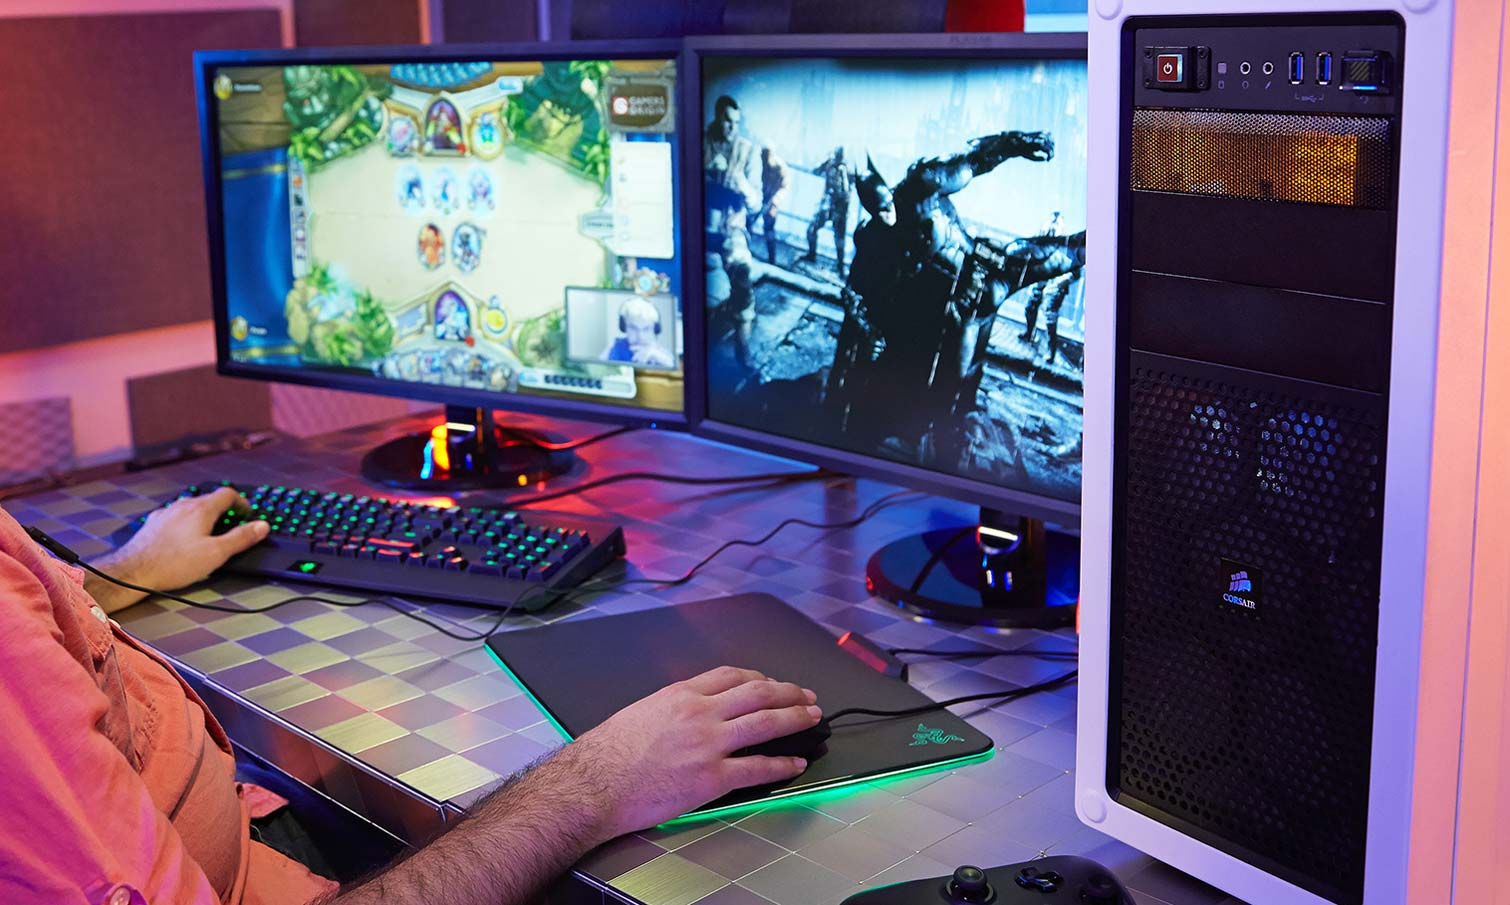 Best Gaming Monitor 2019 - Budget, G-Sync and 4K Monitors | Tom's Guide